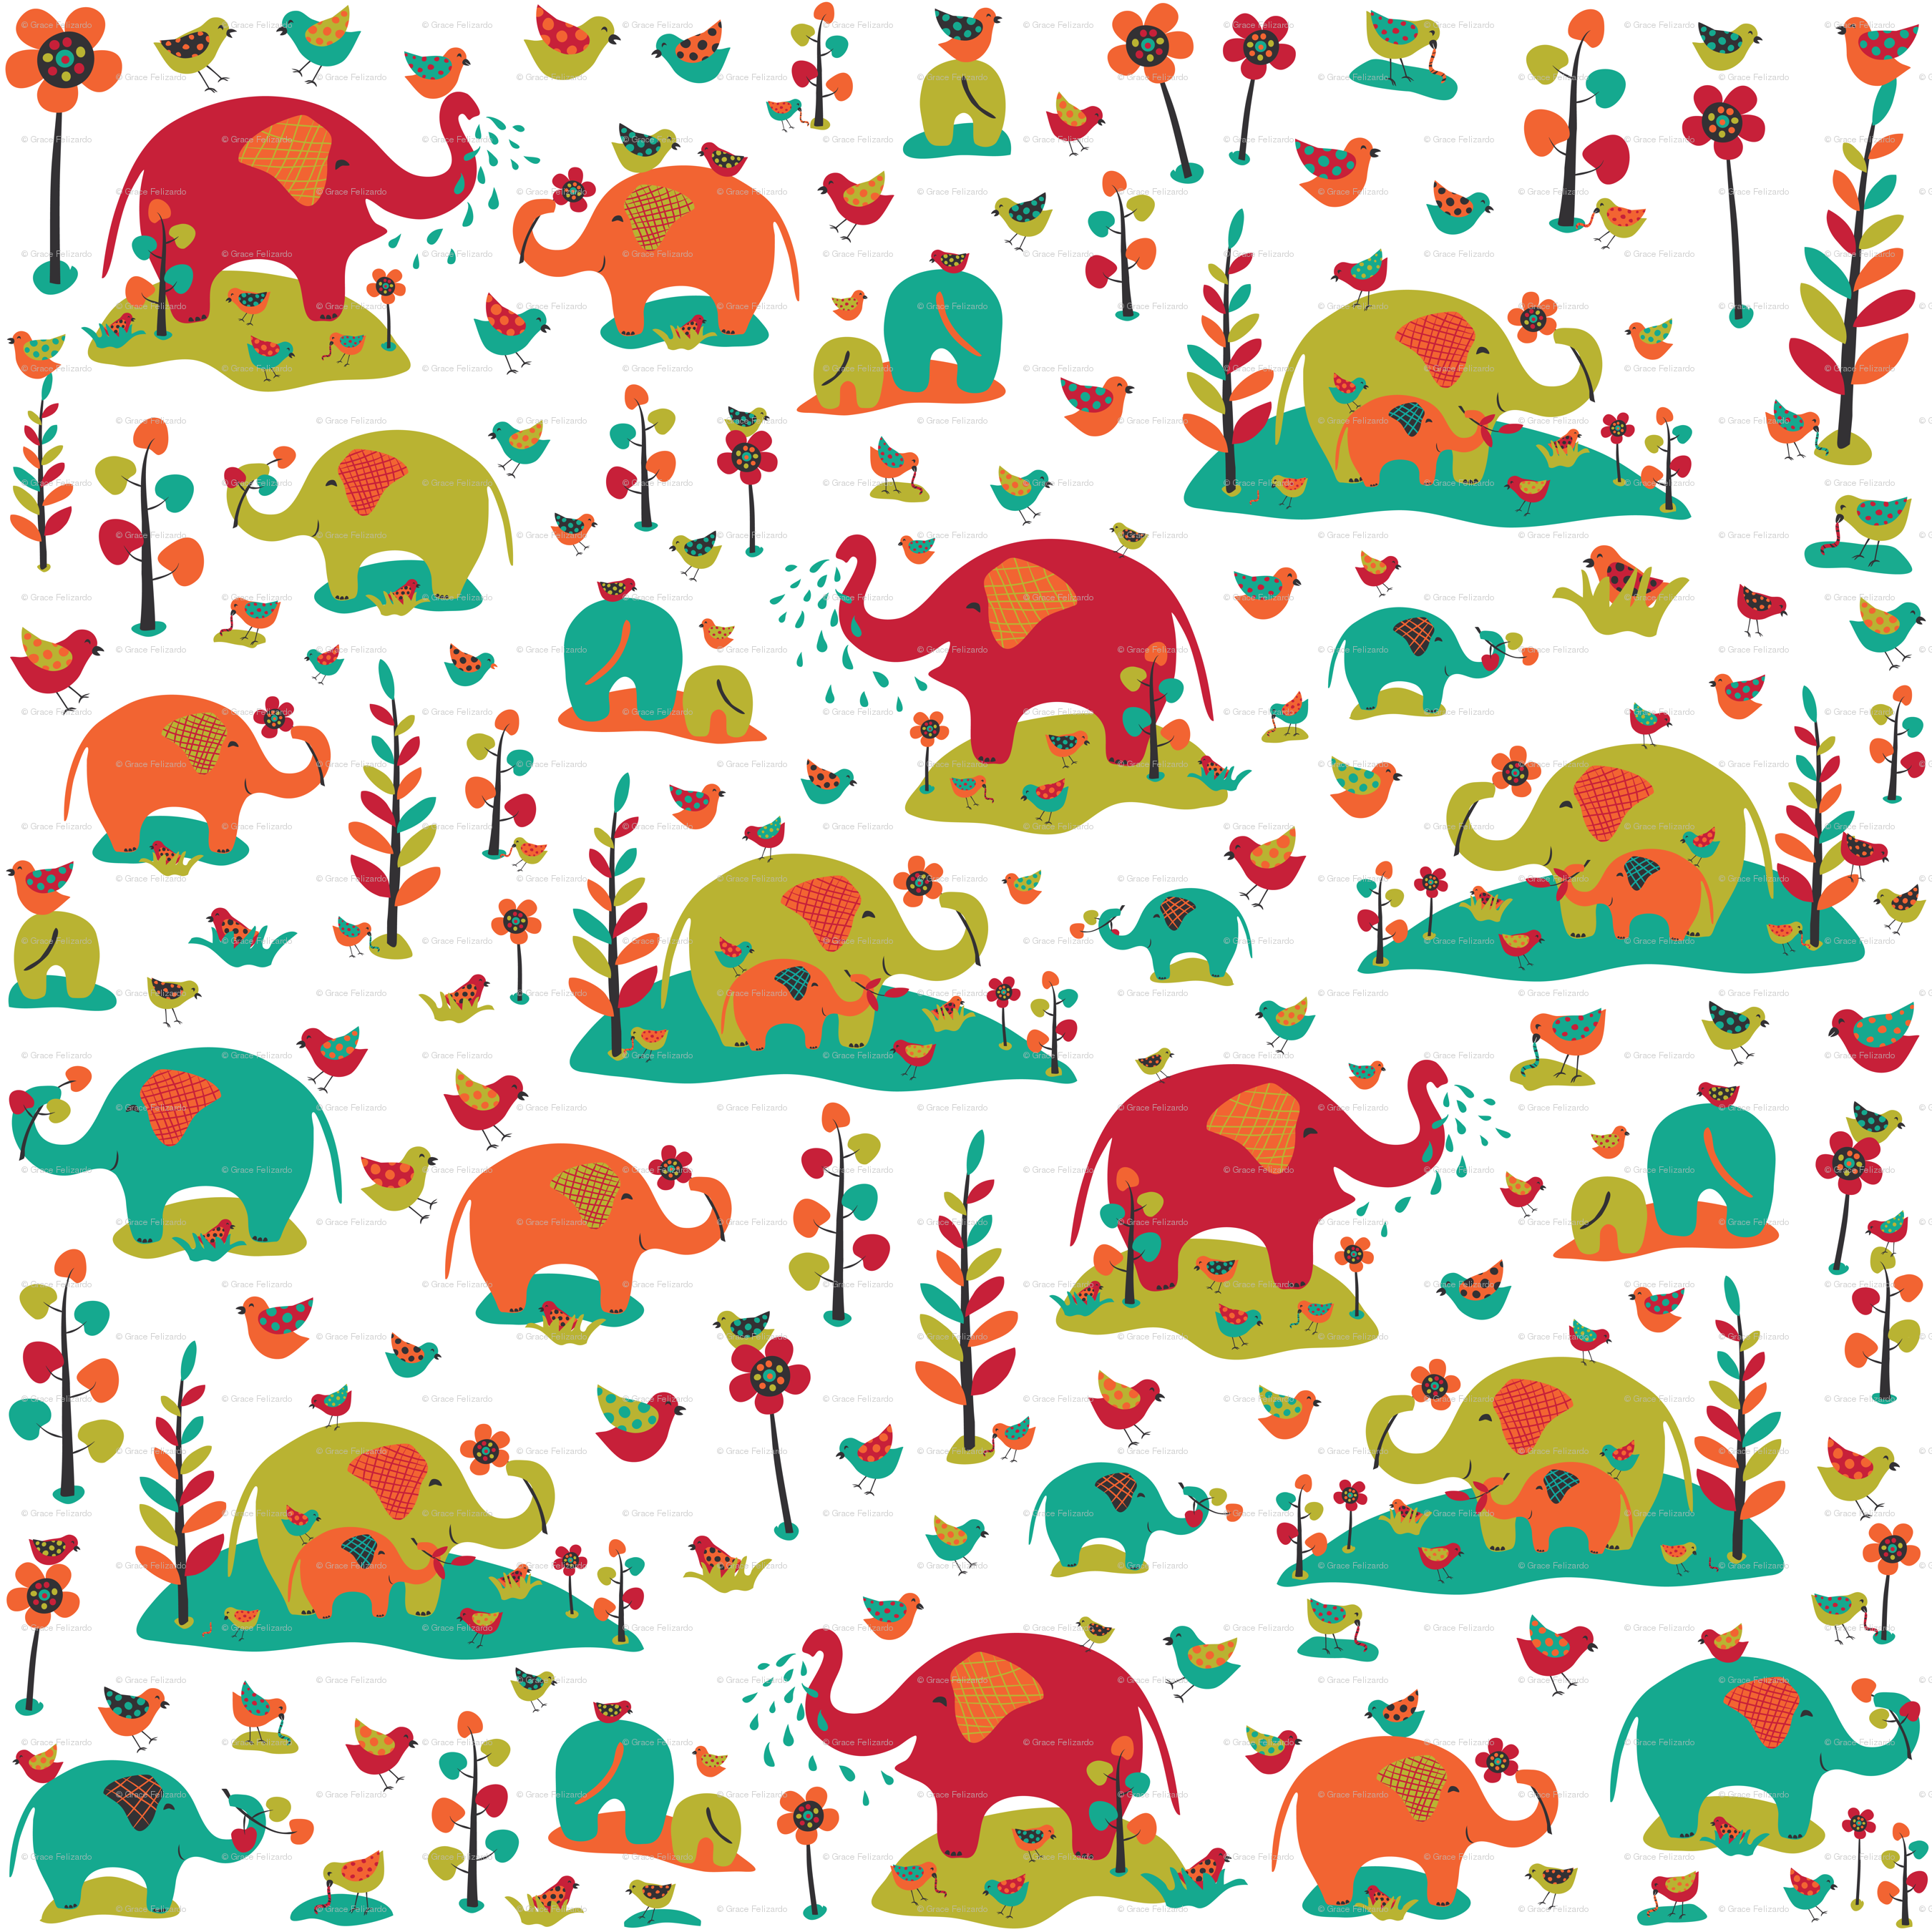 Elephant design wallpaper